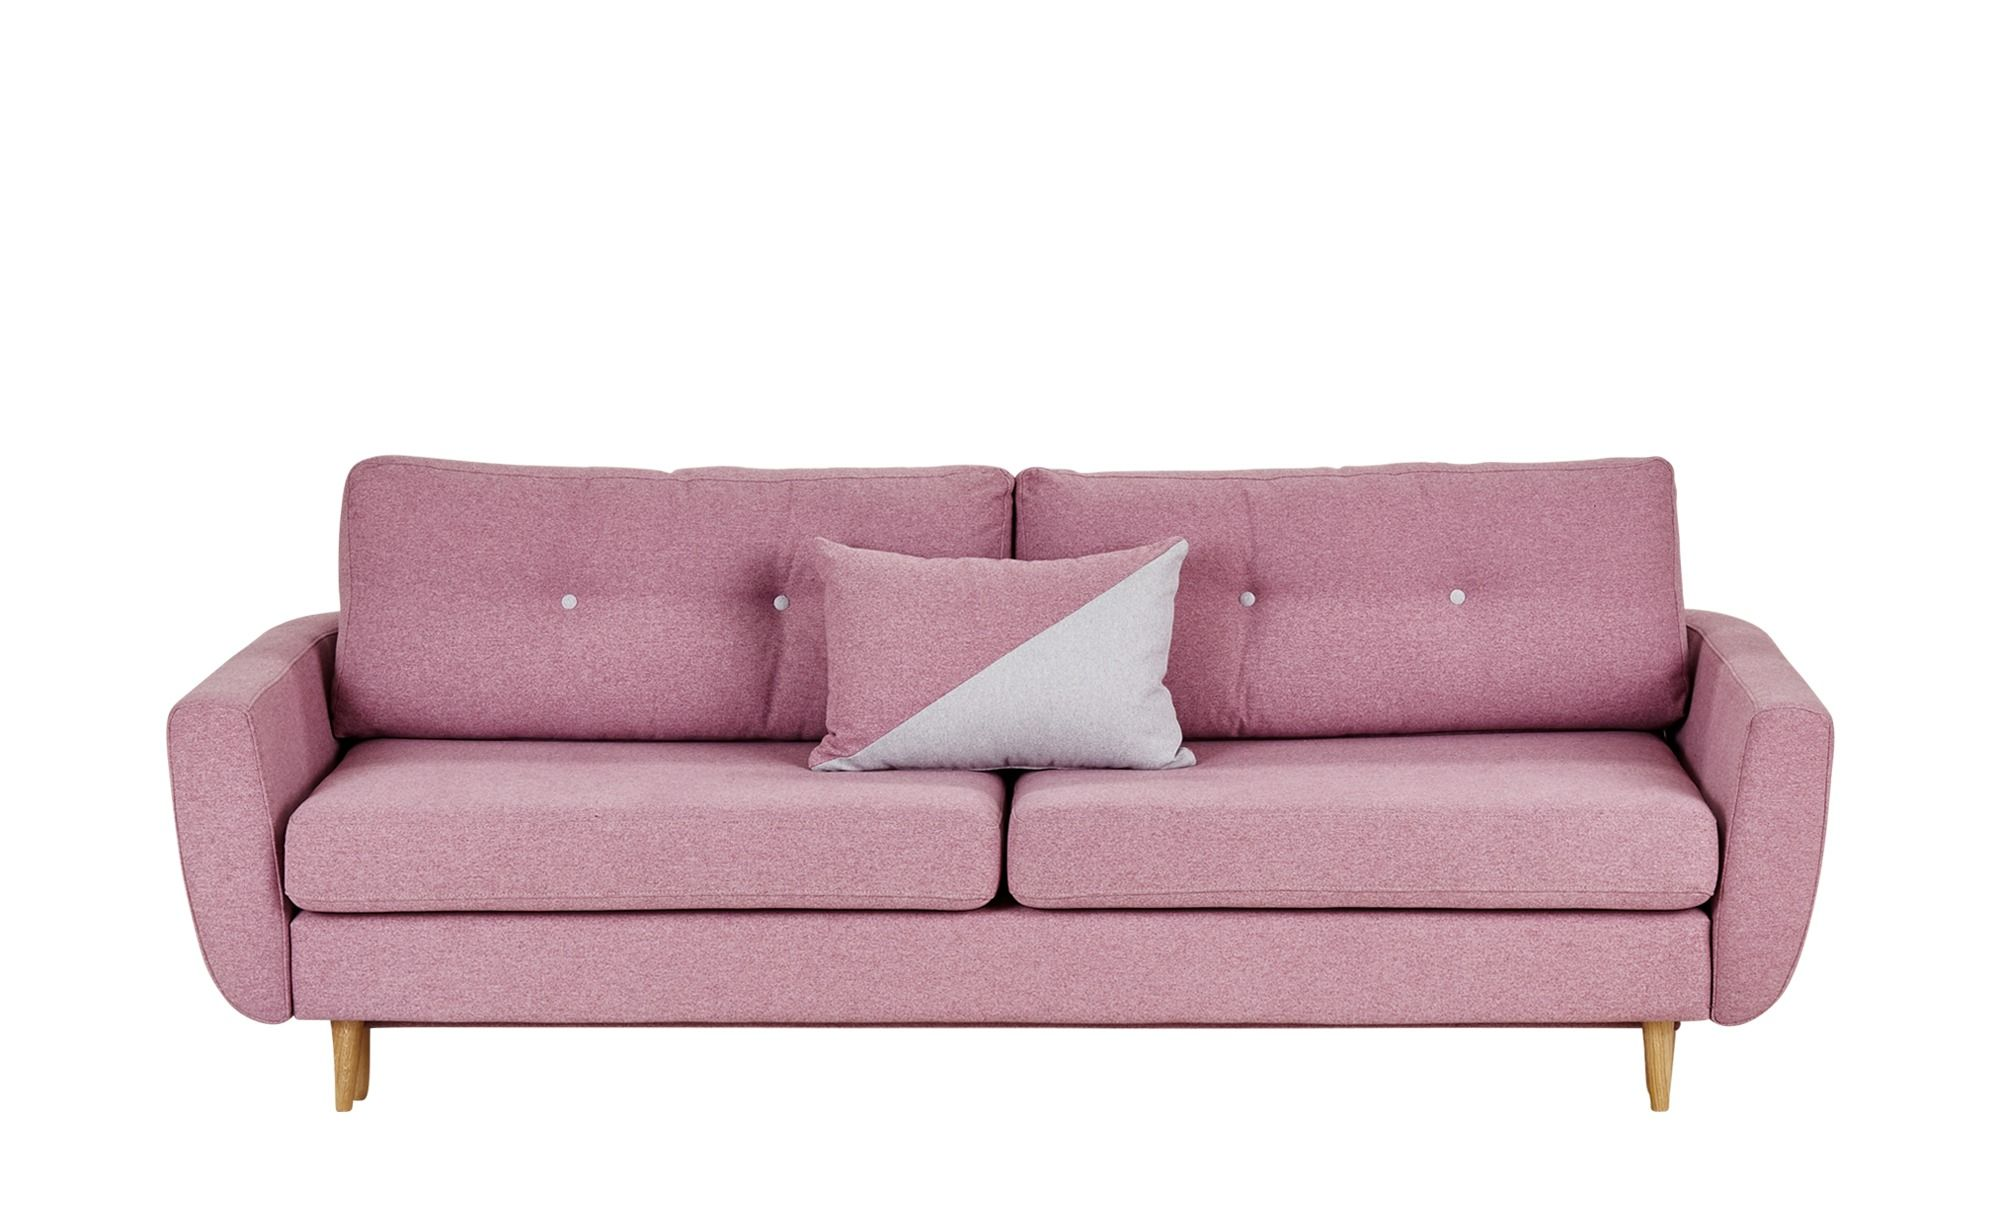 Schlafsofas Online-shop Finya Schlafsofa 3 Sitzig Harris Spare Room Room Ideas And Room